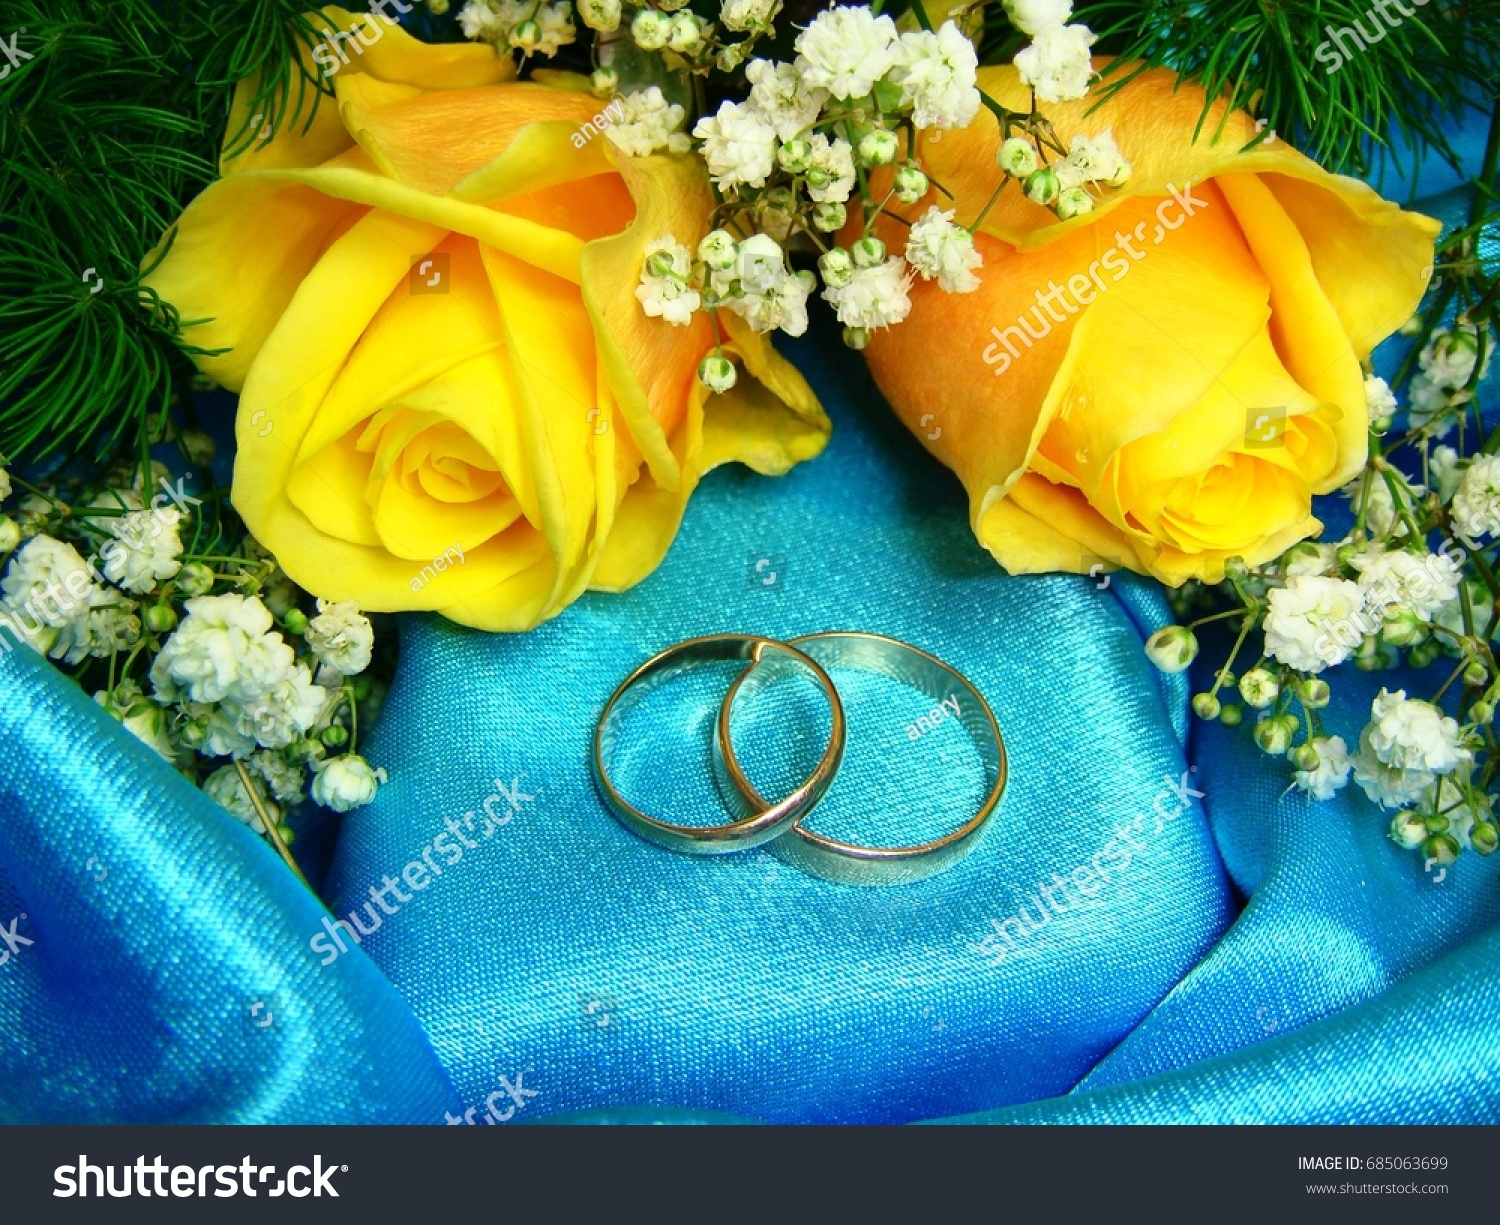 Wedding Rings And Yellow Roses On Blue Background: Yellow Roses Wedding Rings At Reisefeber.org